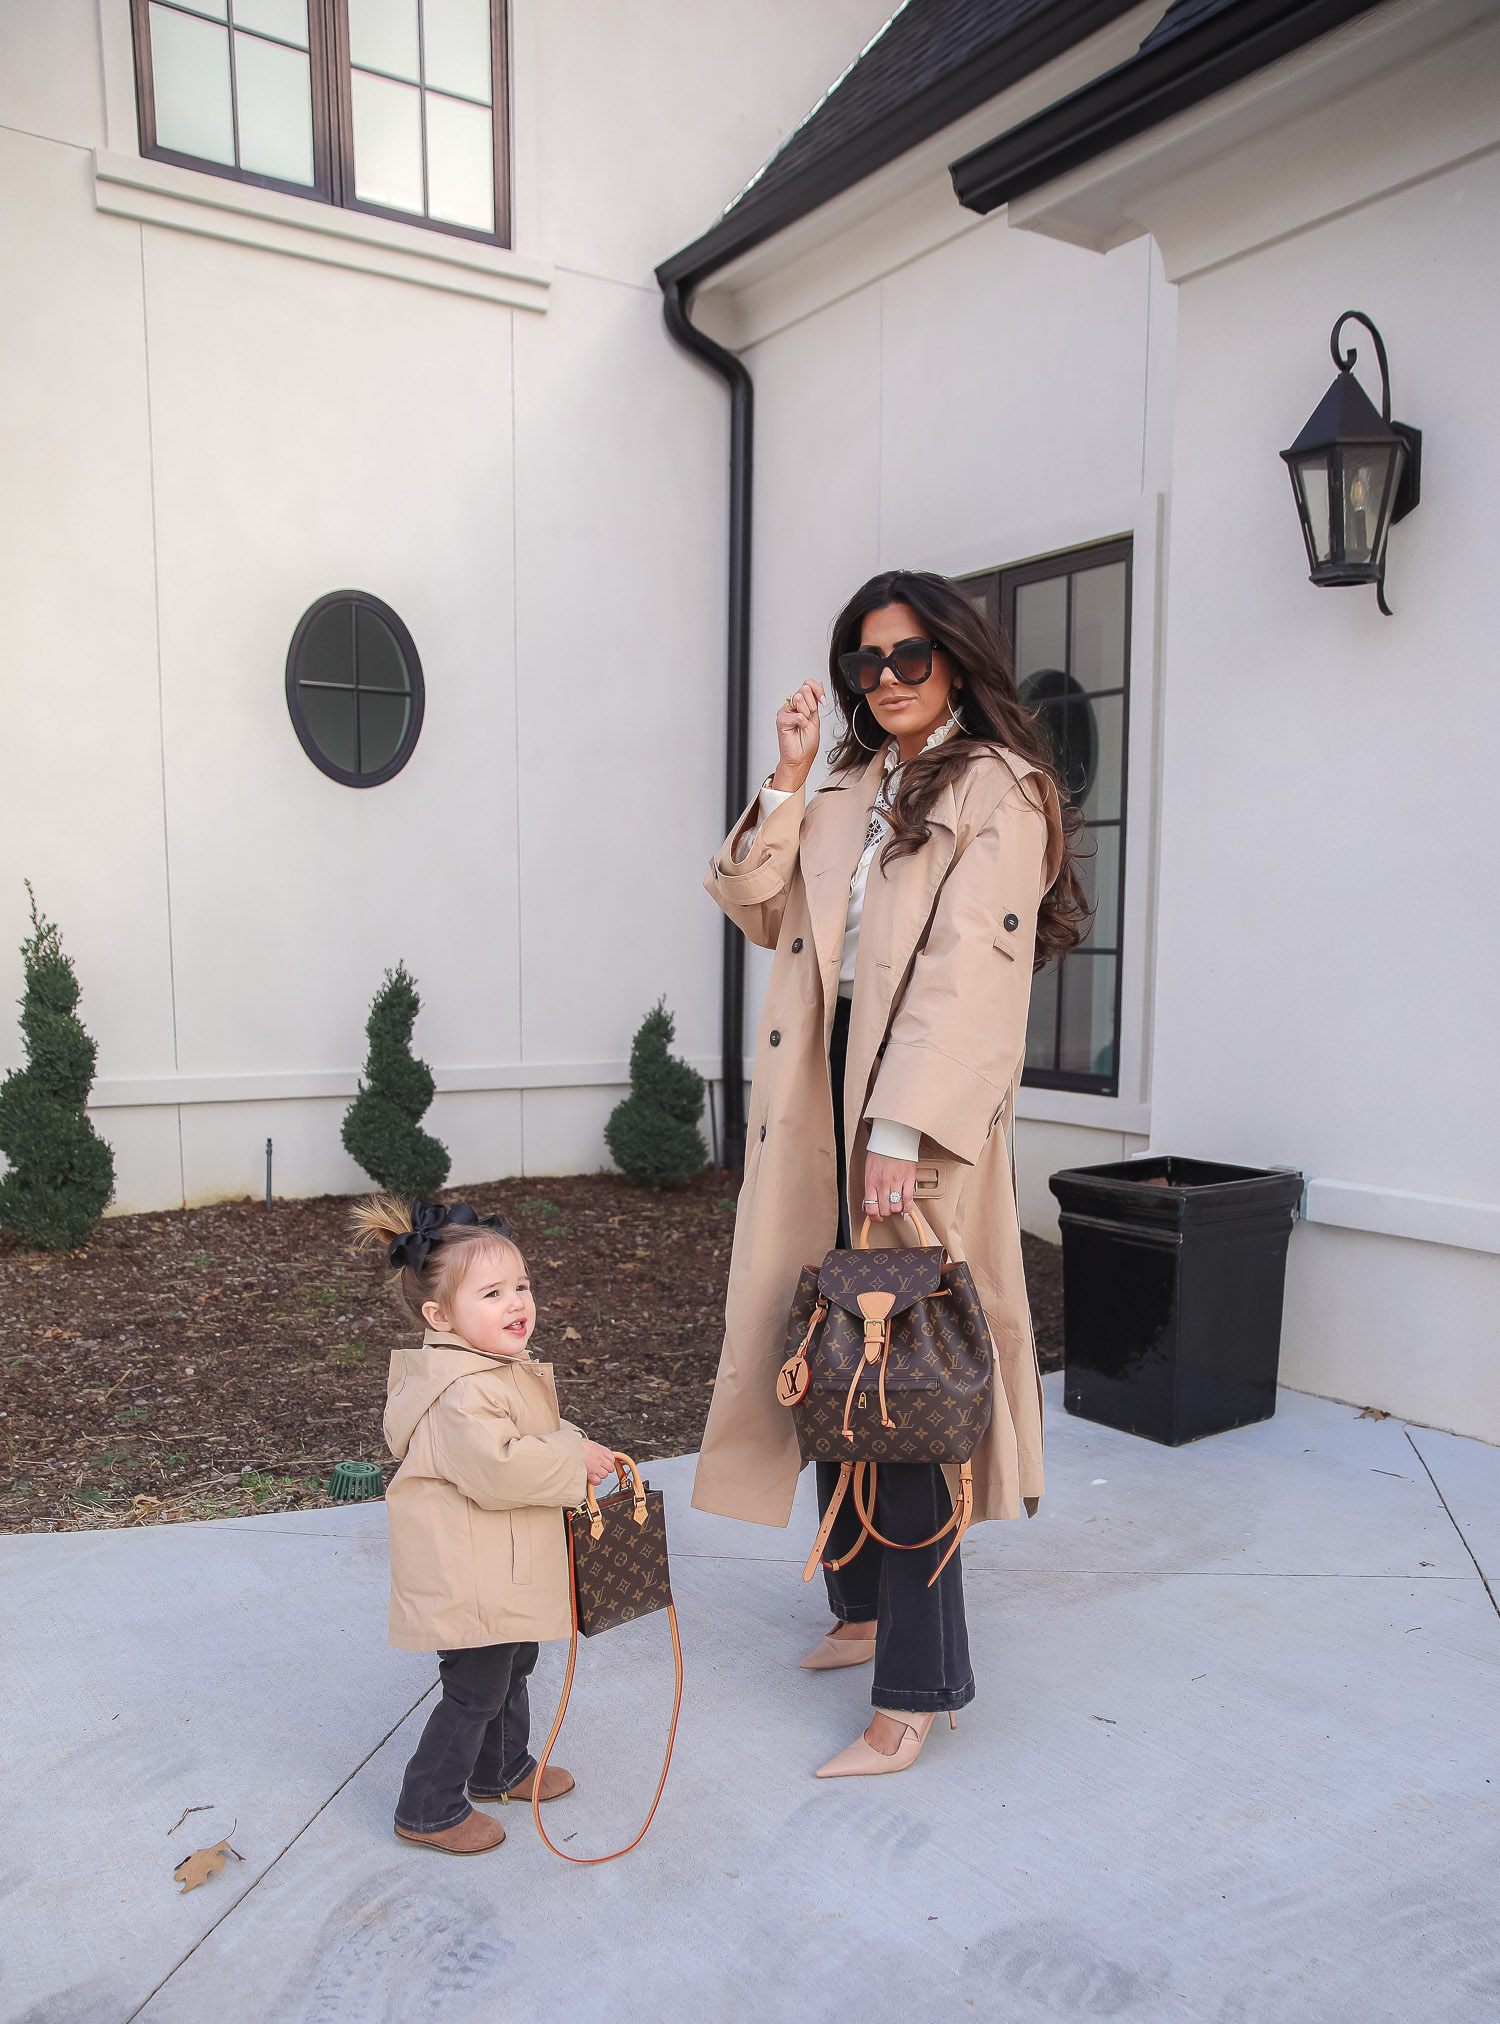 Express spring fashion 2021, emily gemma, mommy daughter matching outfits pinterest, baby fashion blogger, express trench coat 2021 | Mommy and Me Outfits by popular US fashion blog, The Sweetest Thing: image of Emily Gemma and her daughter Sophie standing outside and wearing a Express trench coat, Express flare jeans, Express gold hoop earrings, Express ruffle lack mock neck shirt, and holding a Louis Vuitton bags.